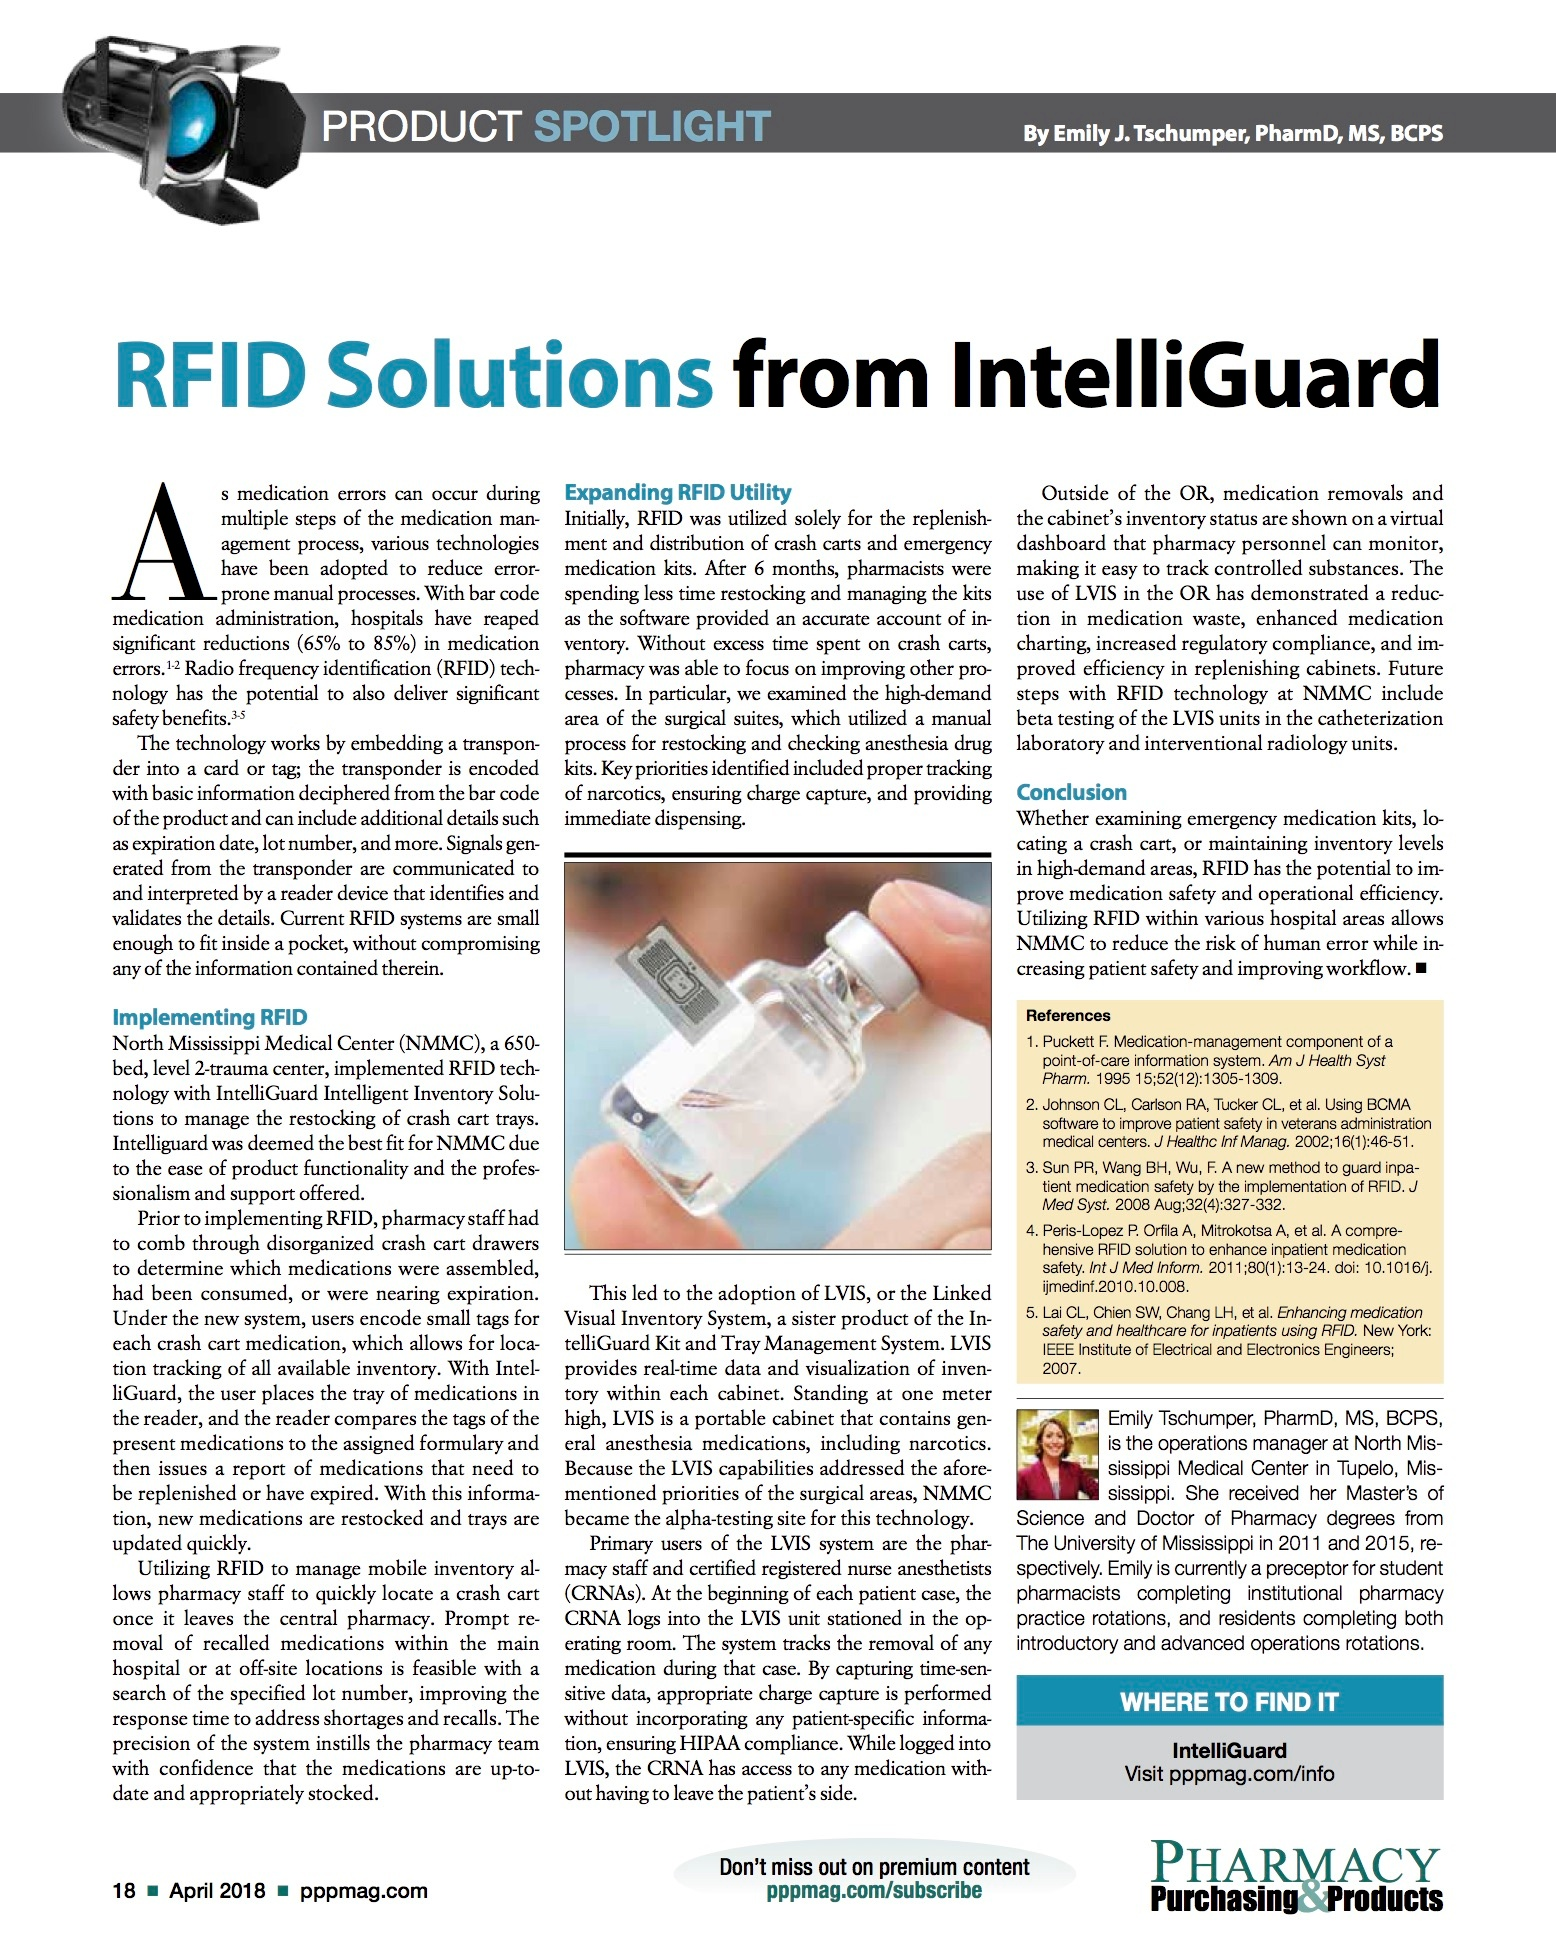 Pharmacy Purchasing & Products – Product Spotlight: RFID